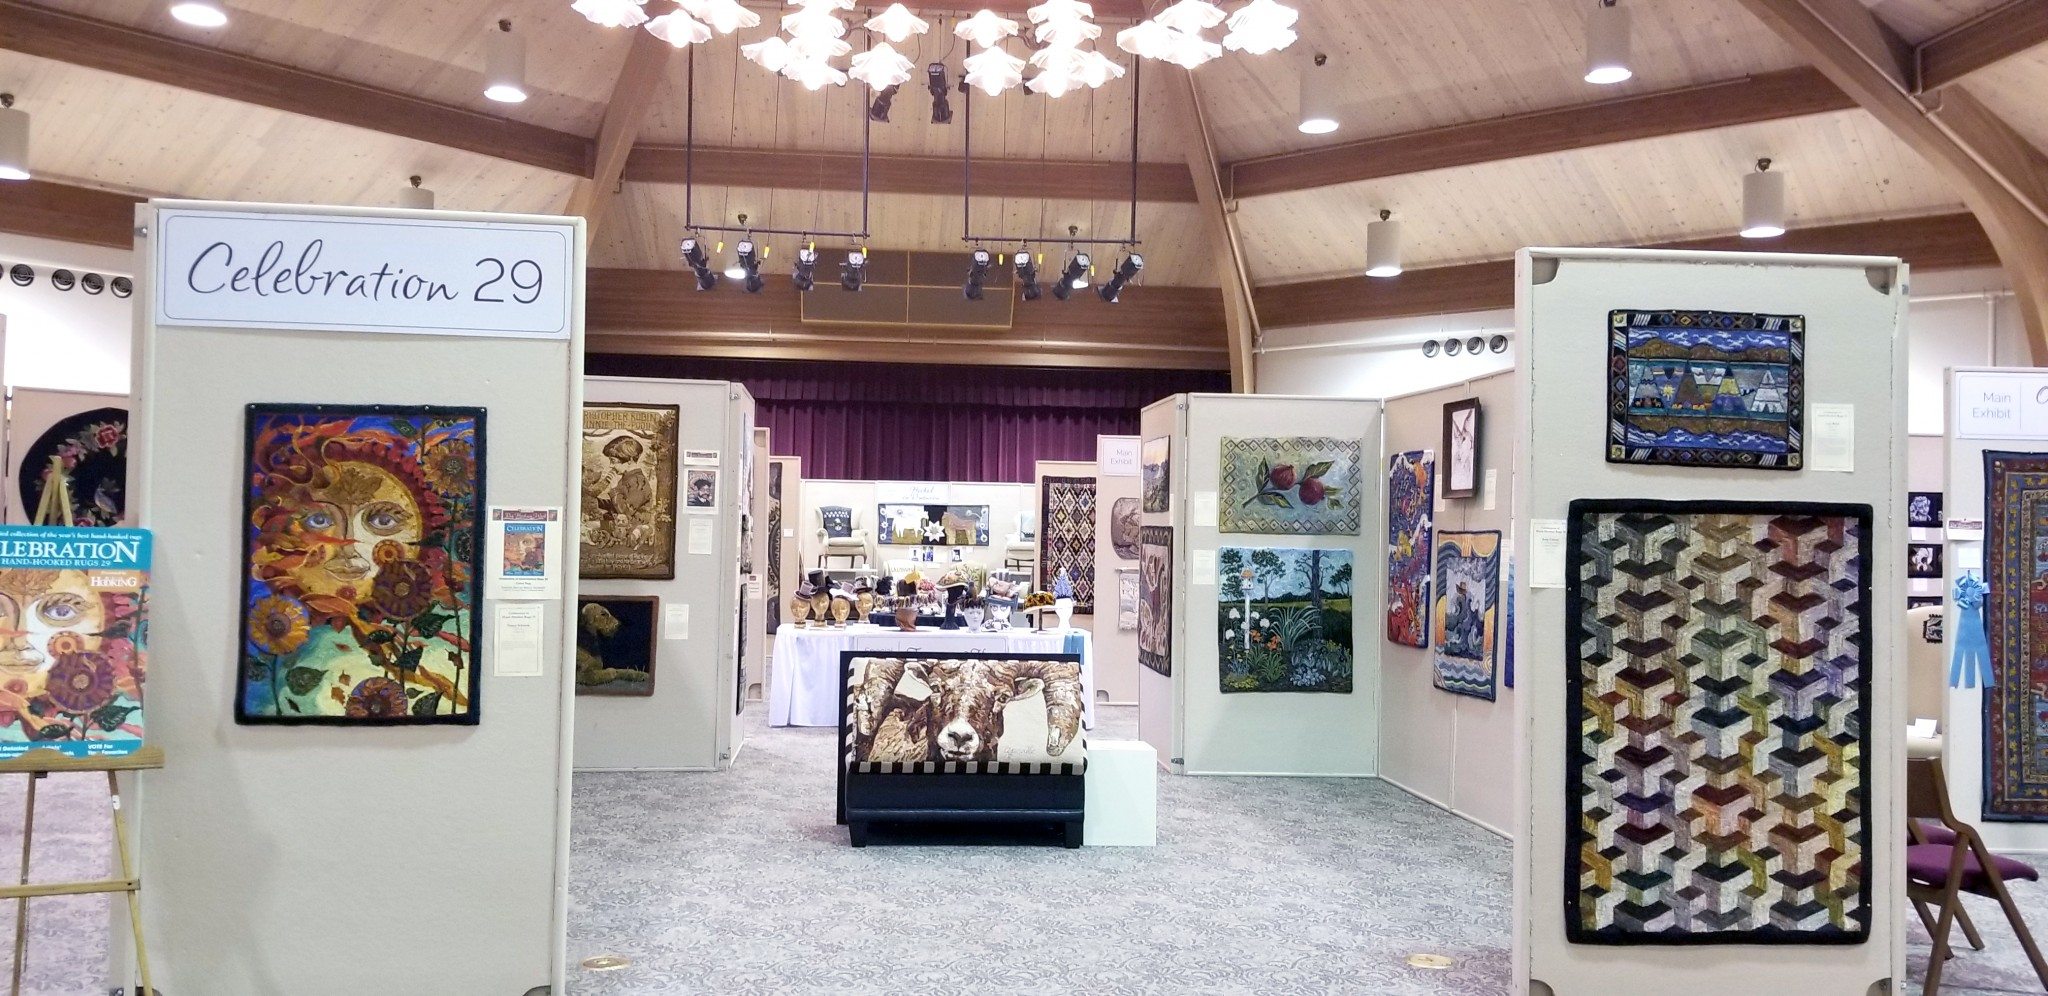 Sauder Village's 25th Annual Rug Hooking Week, which will be held Aug. 18-21 at the historic village located in Archbold, will feature a museum-quality exhibit, workshops, vendors and more. (Photo courtesy of Sauder Village)